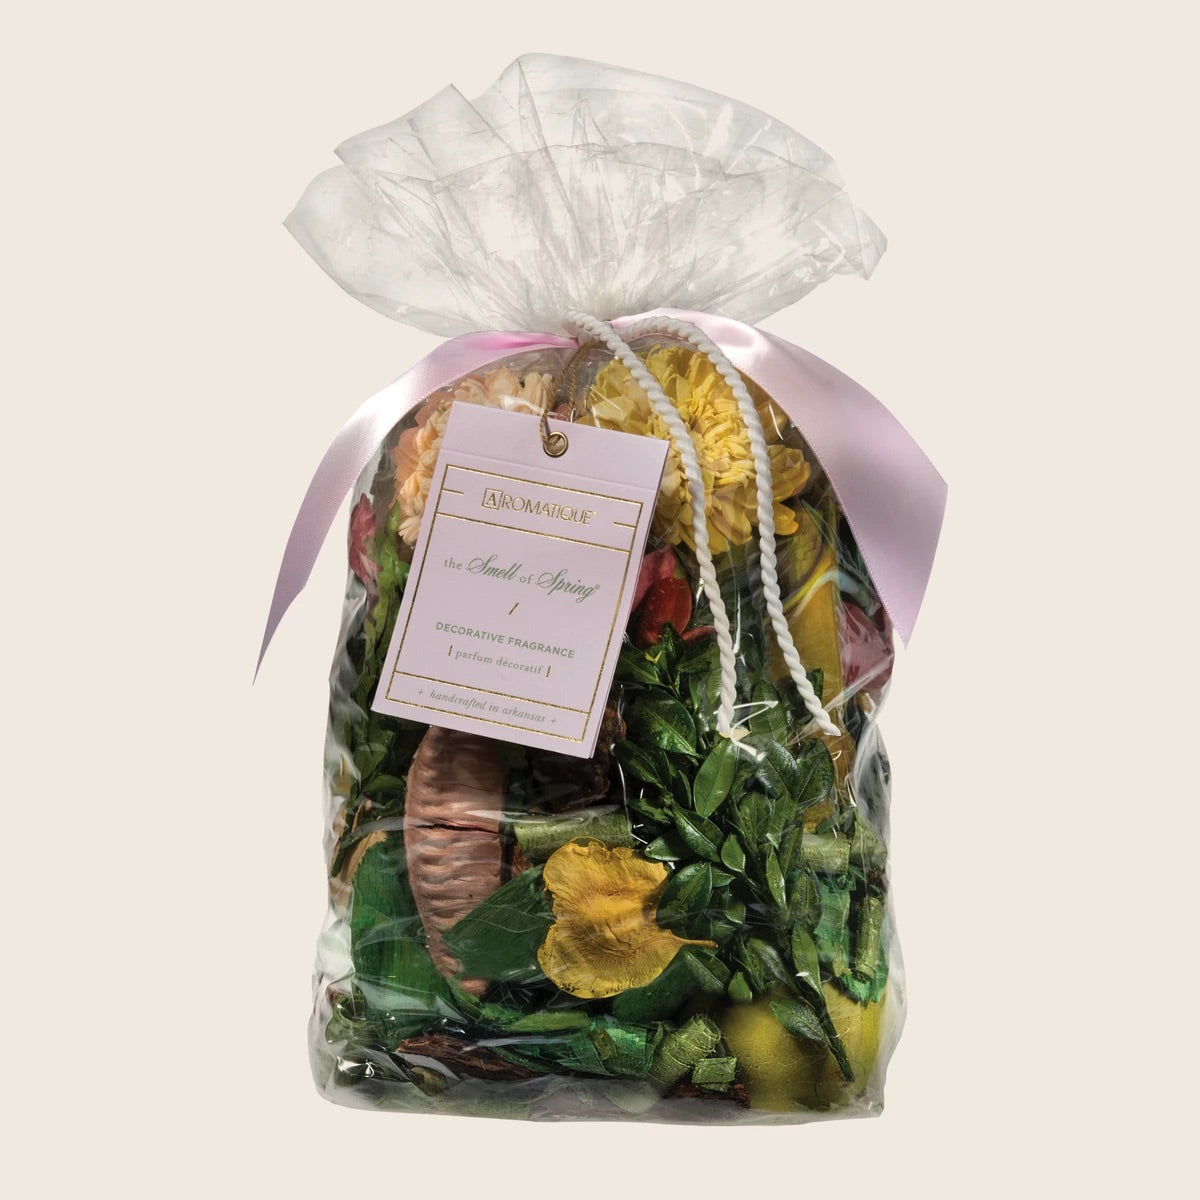 Aromatique - The Smell of Spring12oz - Large Decorative Fragrance